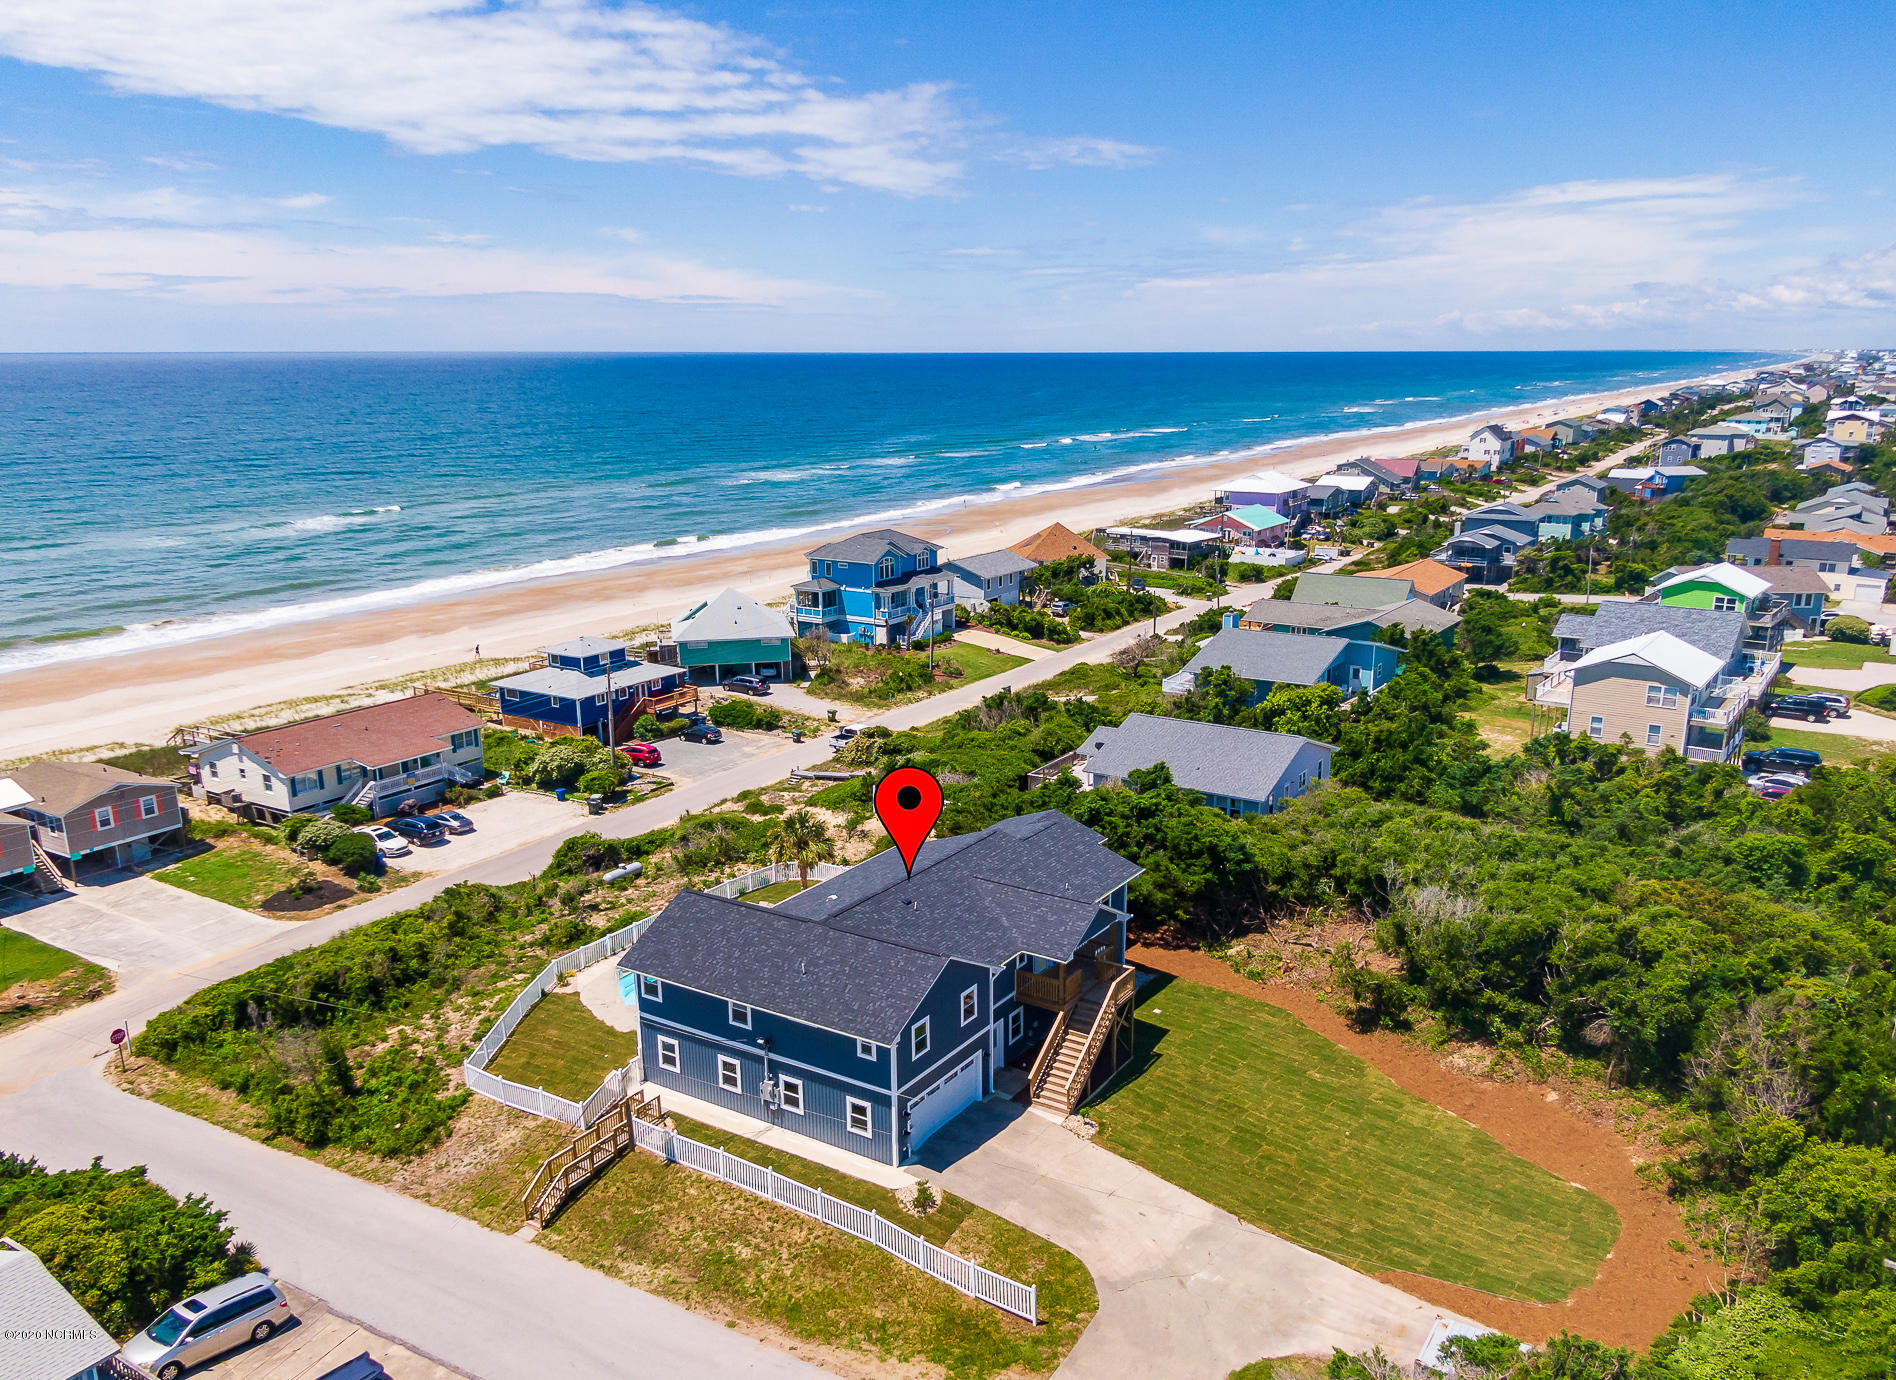 103 13th Street, Emerald Isle, North Carolina 28594, 6 Bedrooms Bedrooms, ,6 BathroomsBathrooms,Residential,For Sale,13th,100223187